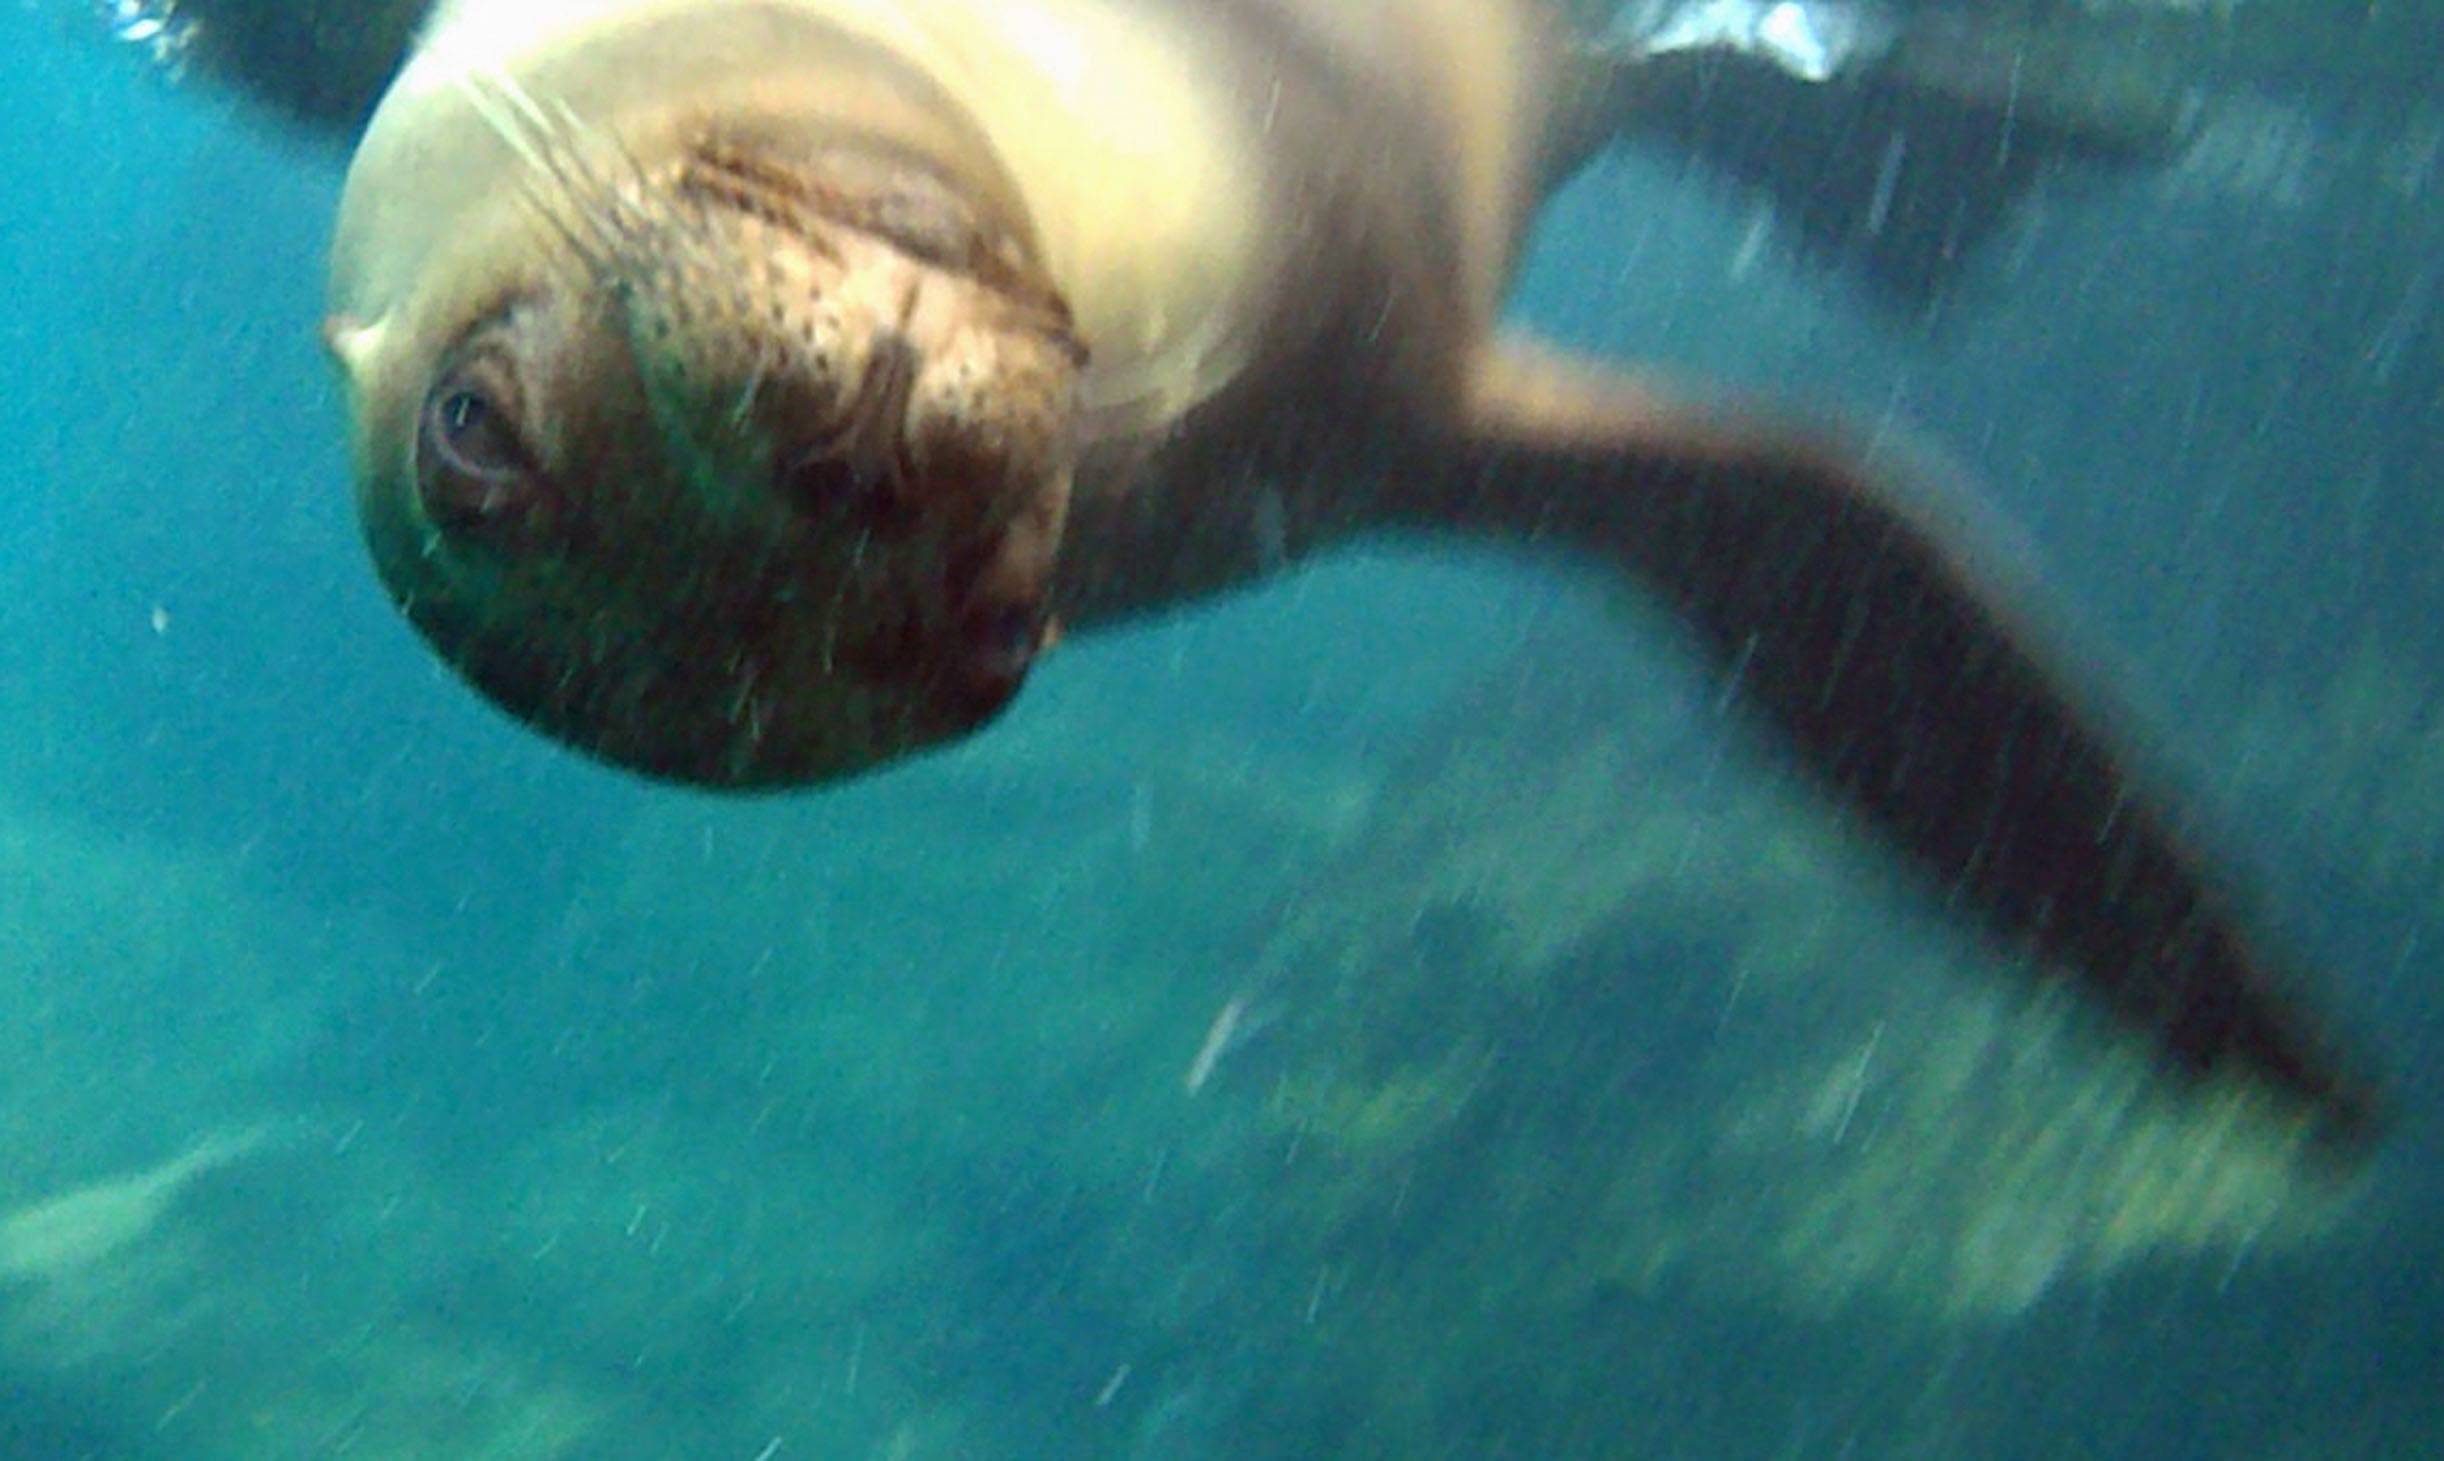 Underwater photo of seal's face